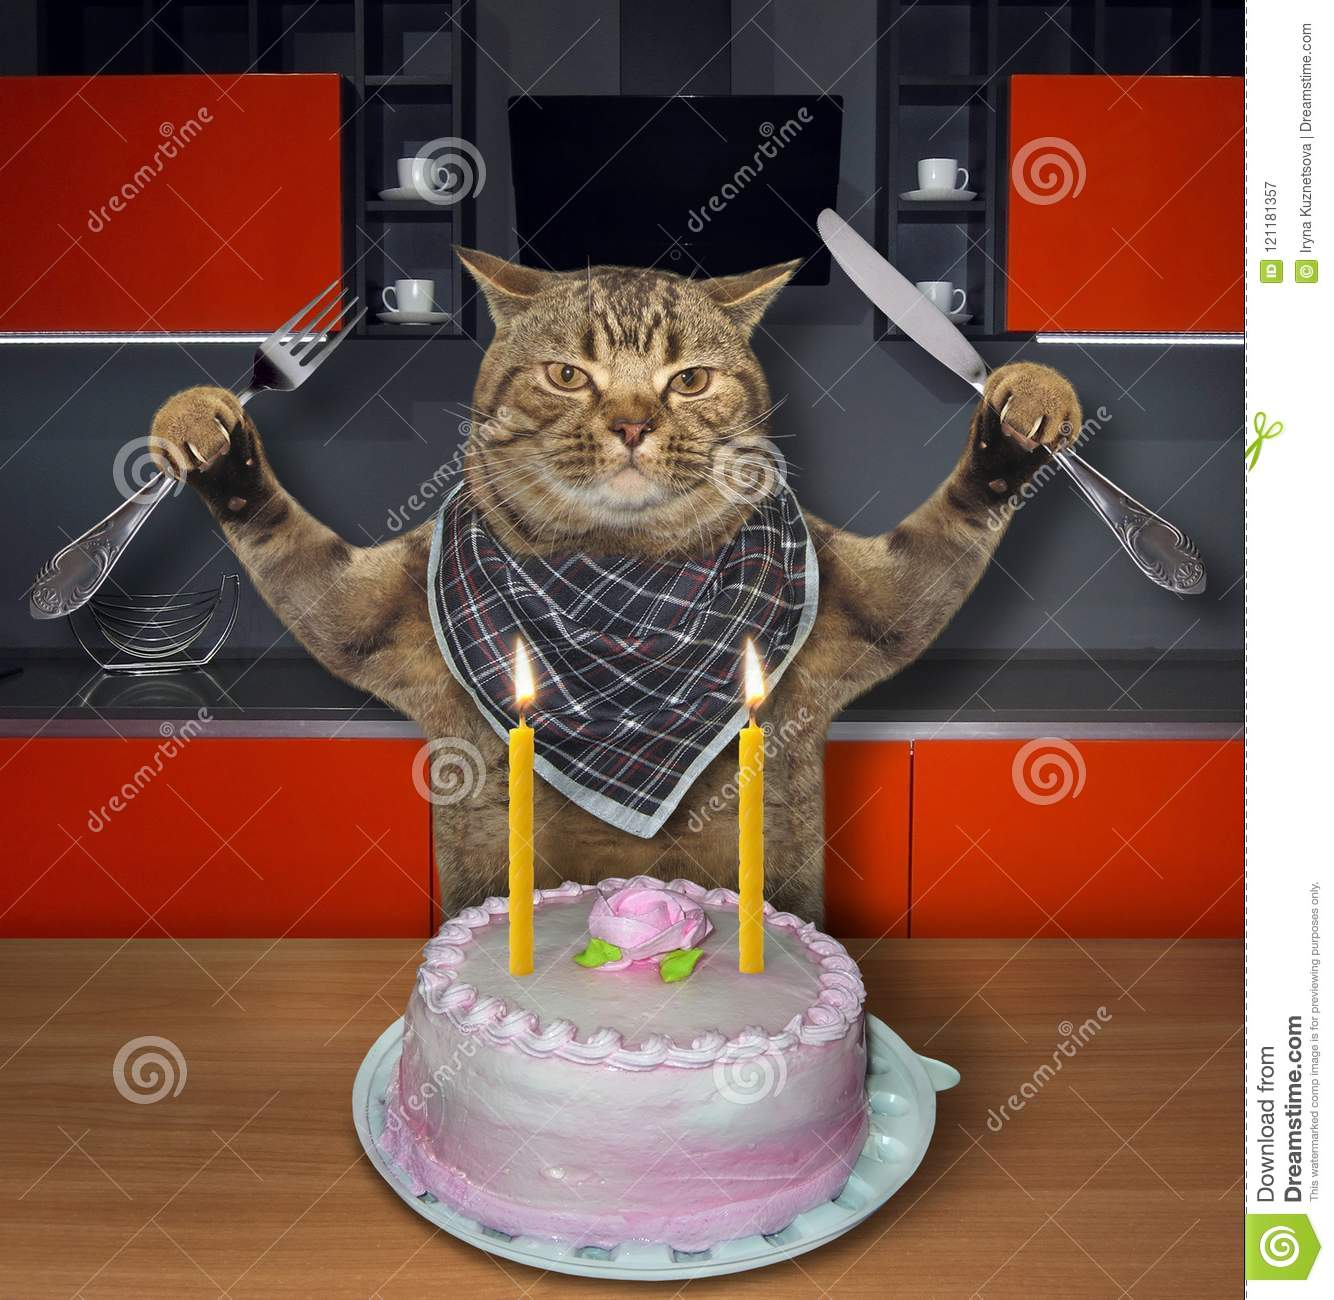 Cat Eats The Birthday Cake 2 Stock Image Image Of Holiday Humor